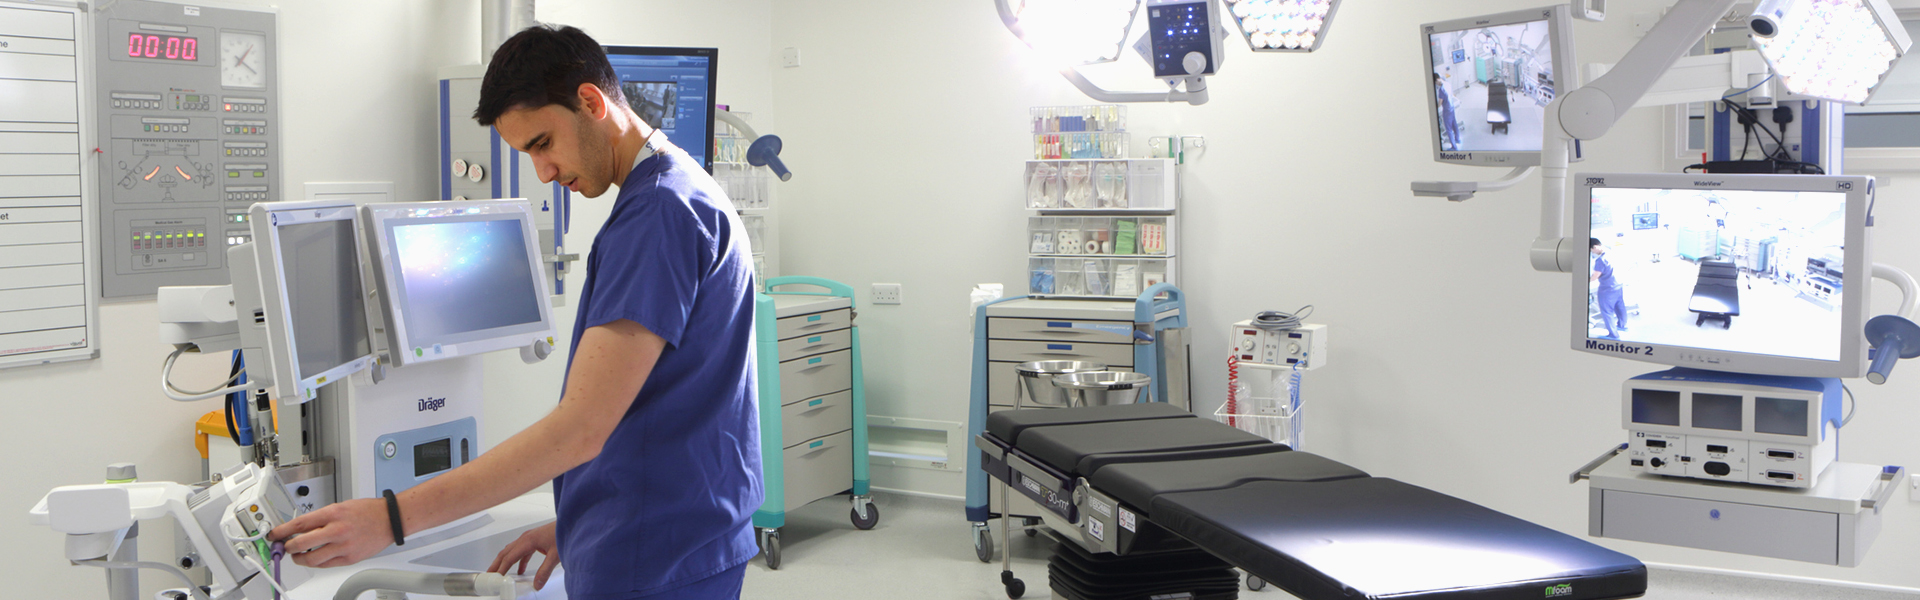 Foto: Real Time Staff & Asset Location Systems for hospitals. Optimise your operations, drive efficiencies and save money.